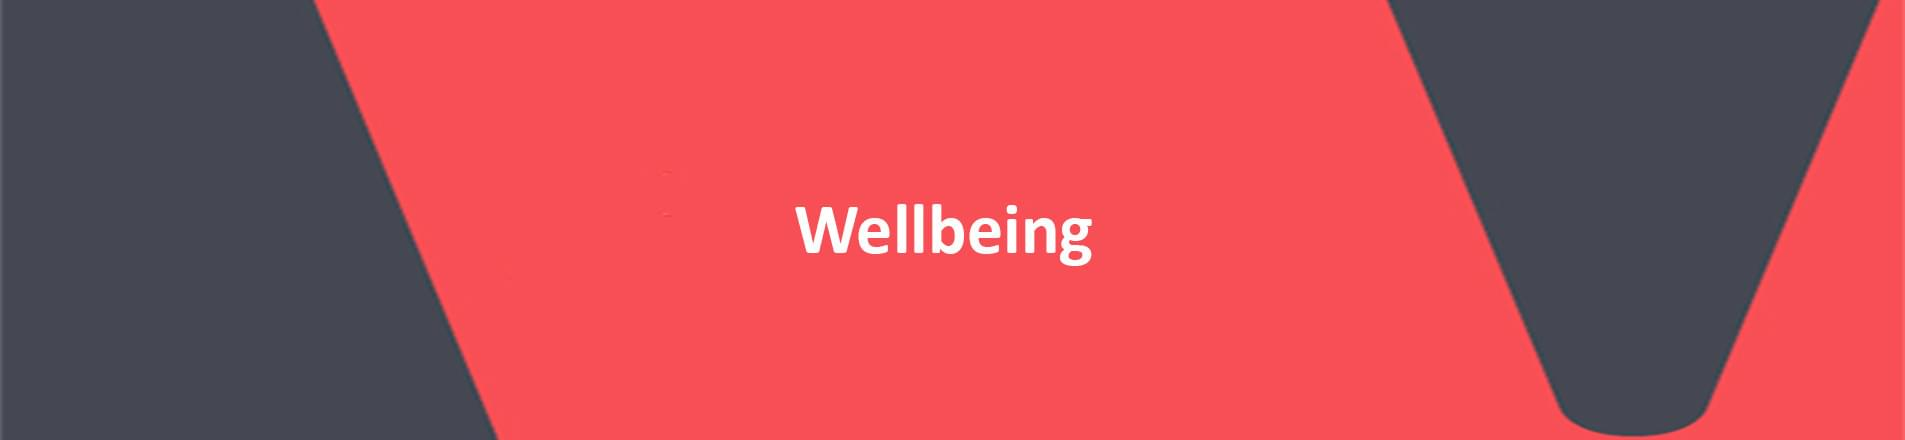 Red background, with white text overlaid spelling Wellbeing.